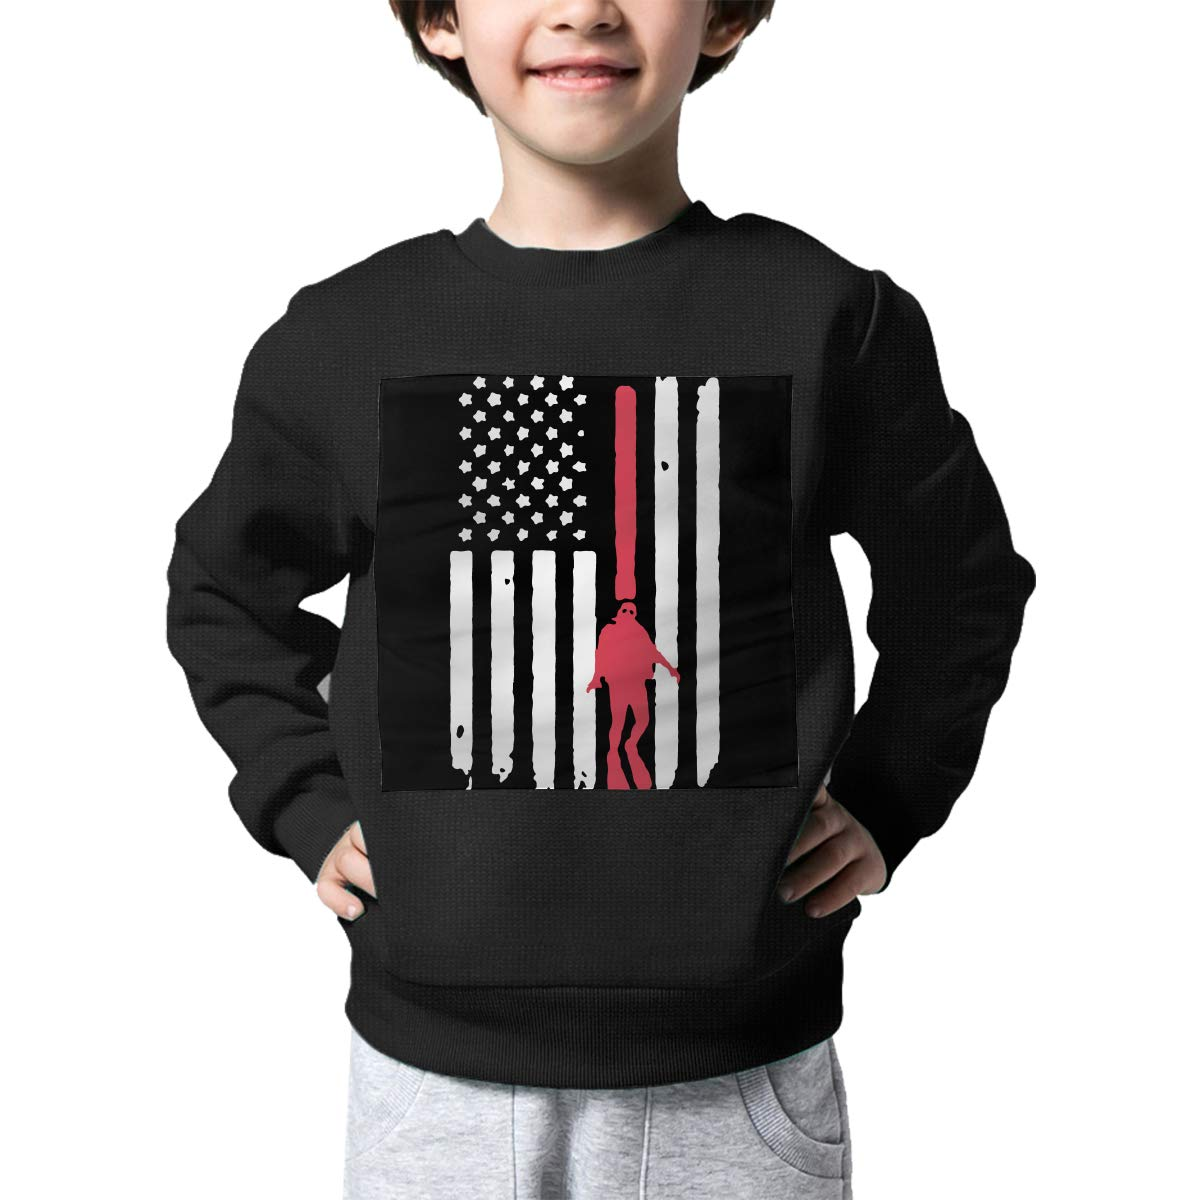 NJKM5MJ Boys Girls American Flag Scuba Diving Lovely Sweaters Soft Warm Kids Sweater